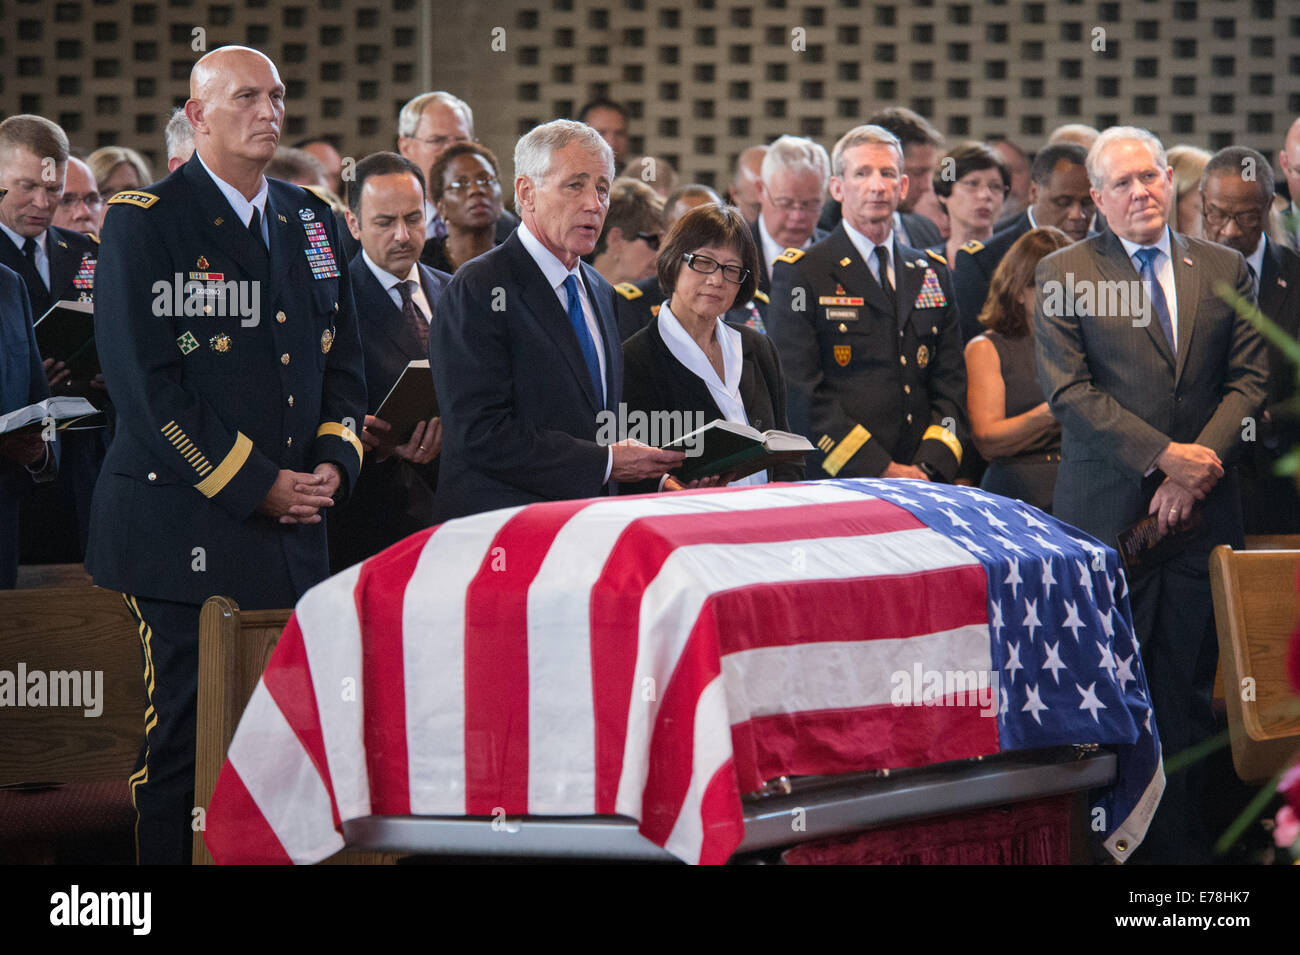 The chief of staff of the U.S. Army, Gen. Raymond T. Odierno, the U.S. secretary of defense, Chuck Hagel, and the - Stock Image